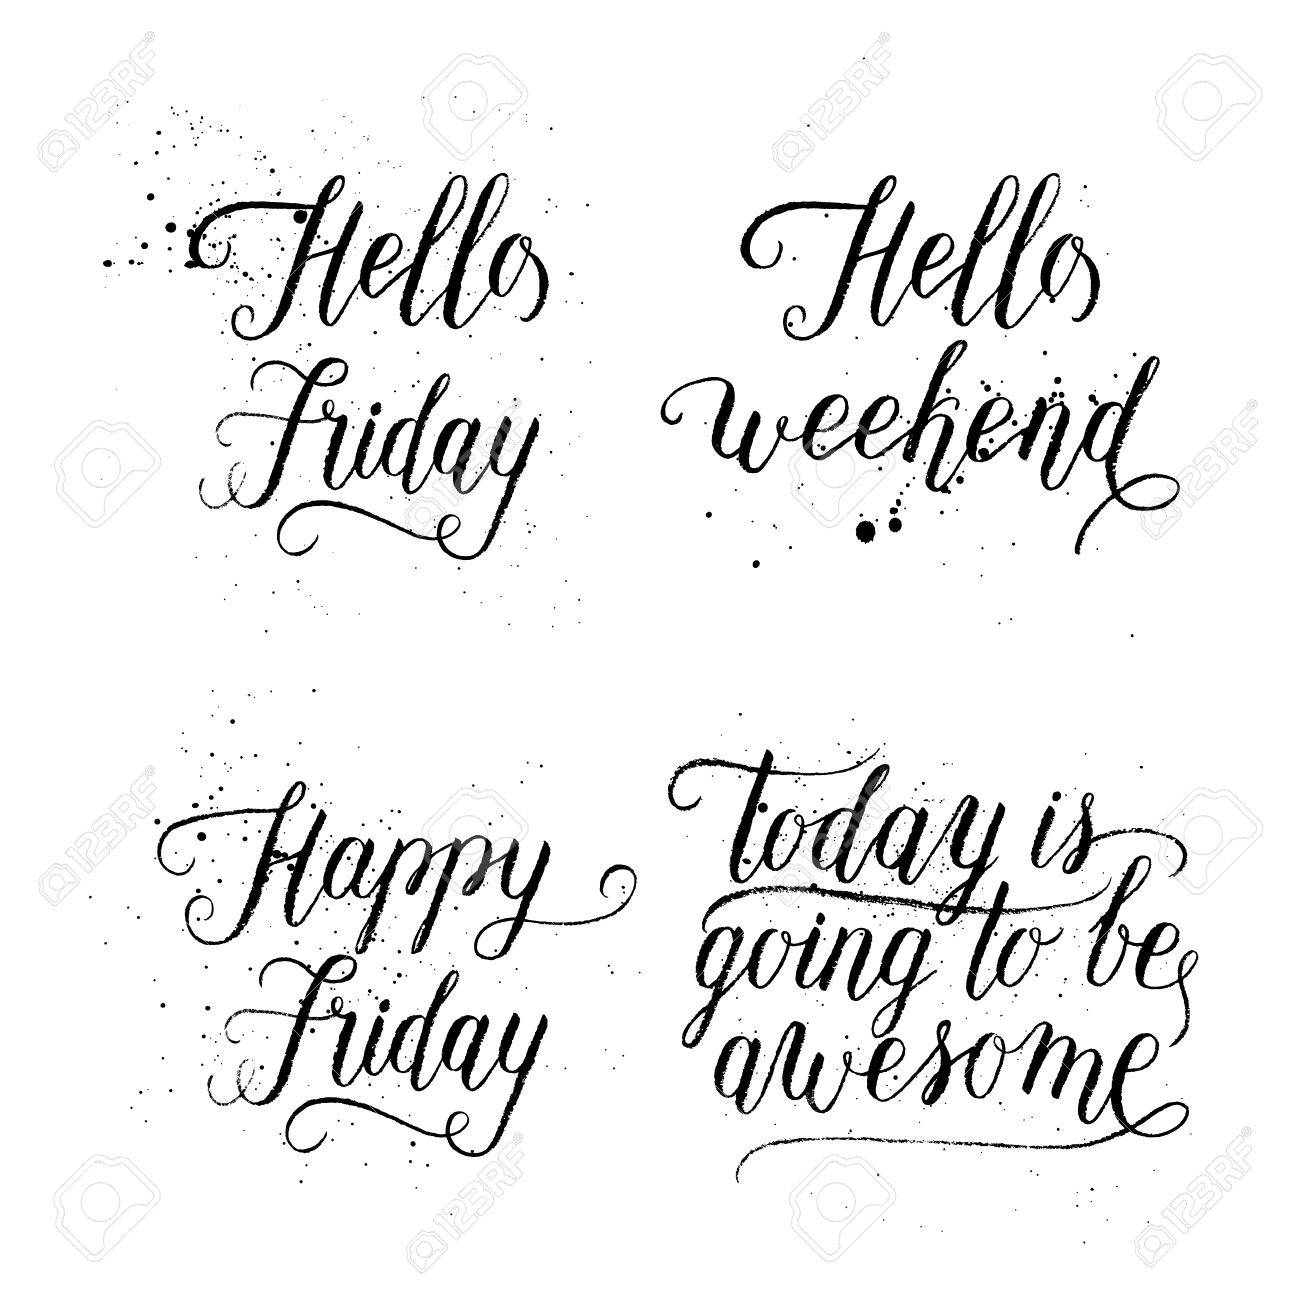 Hello Friday Happy Weekend Happy Friday Today Is Going To